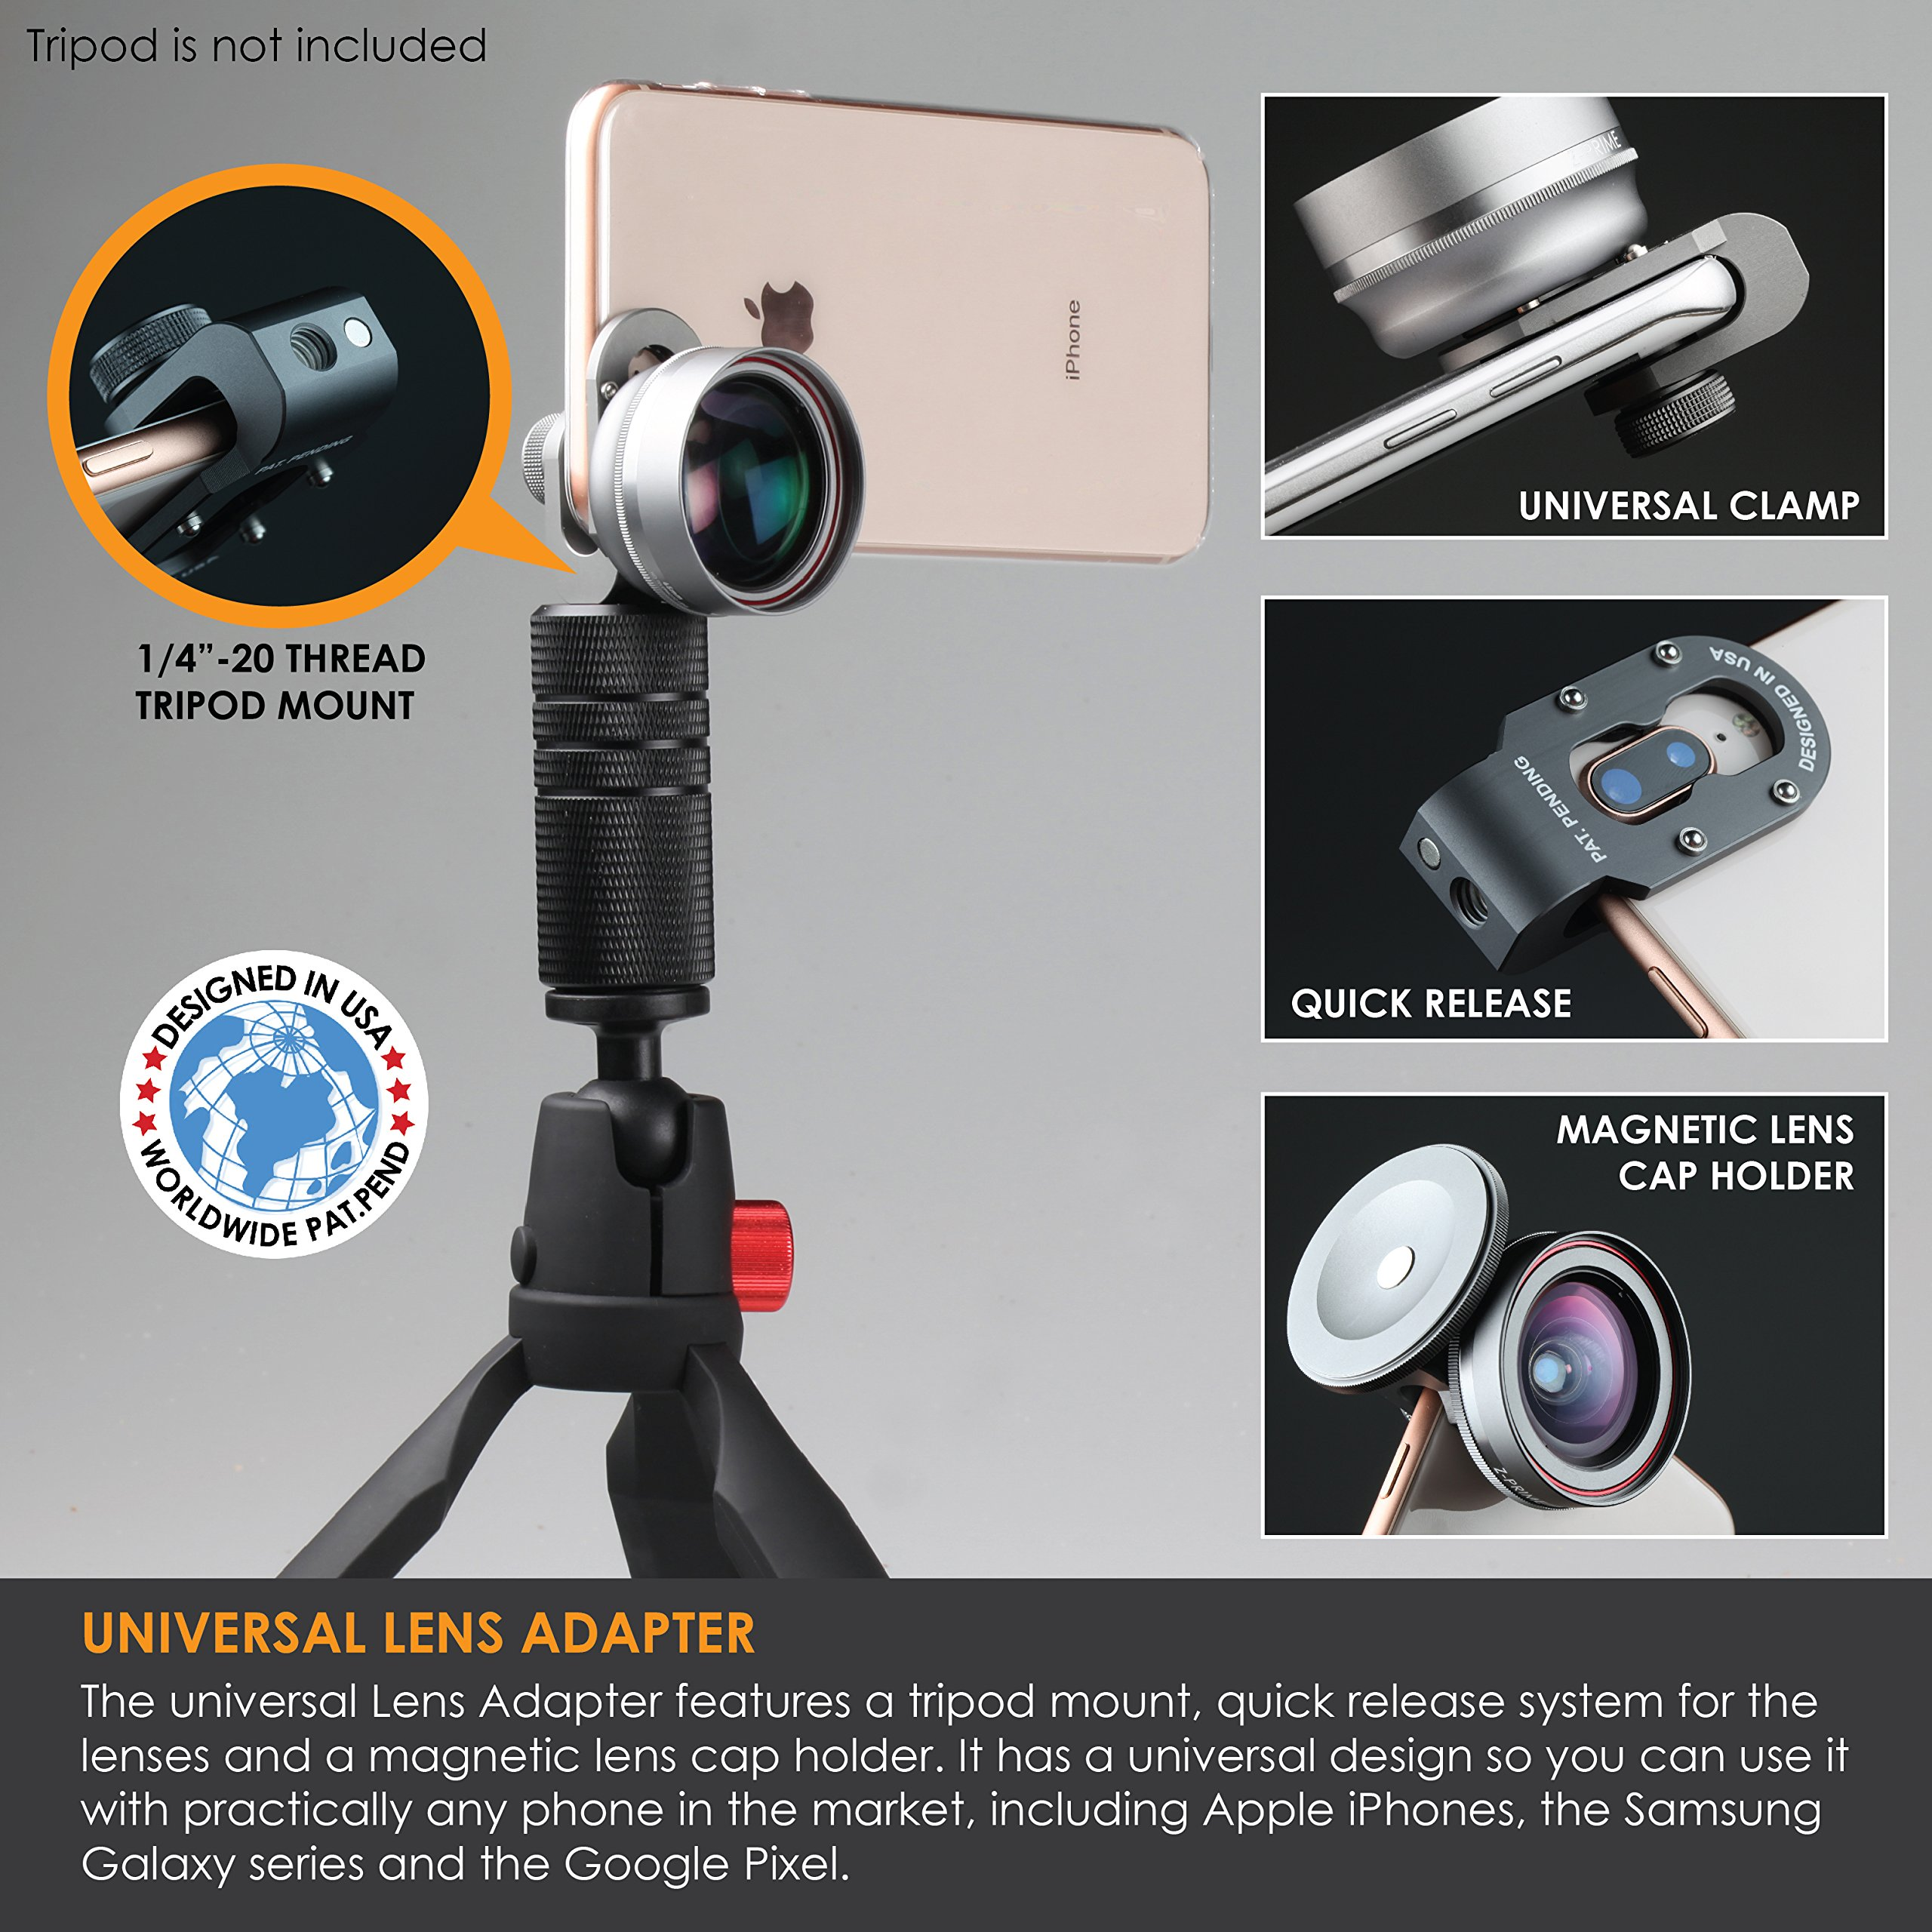 Ztylus Z-Prime Universal 16mm Wide Angle Lens, for iPhone, Samsung Galaxy, Google Pixel by Ztylus (Image #4)